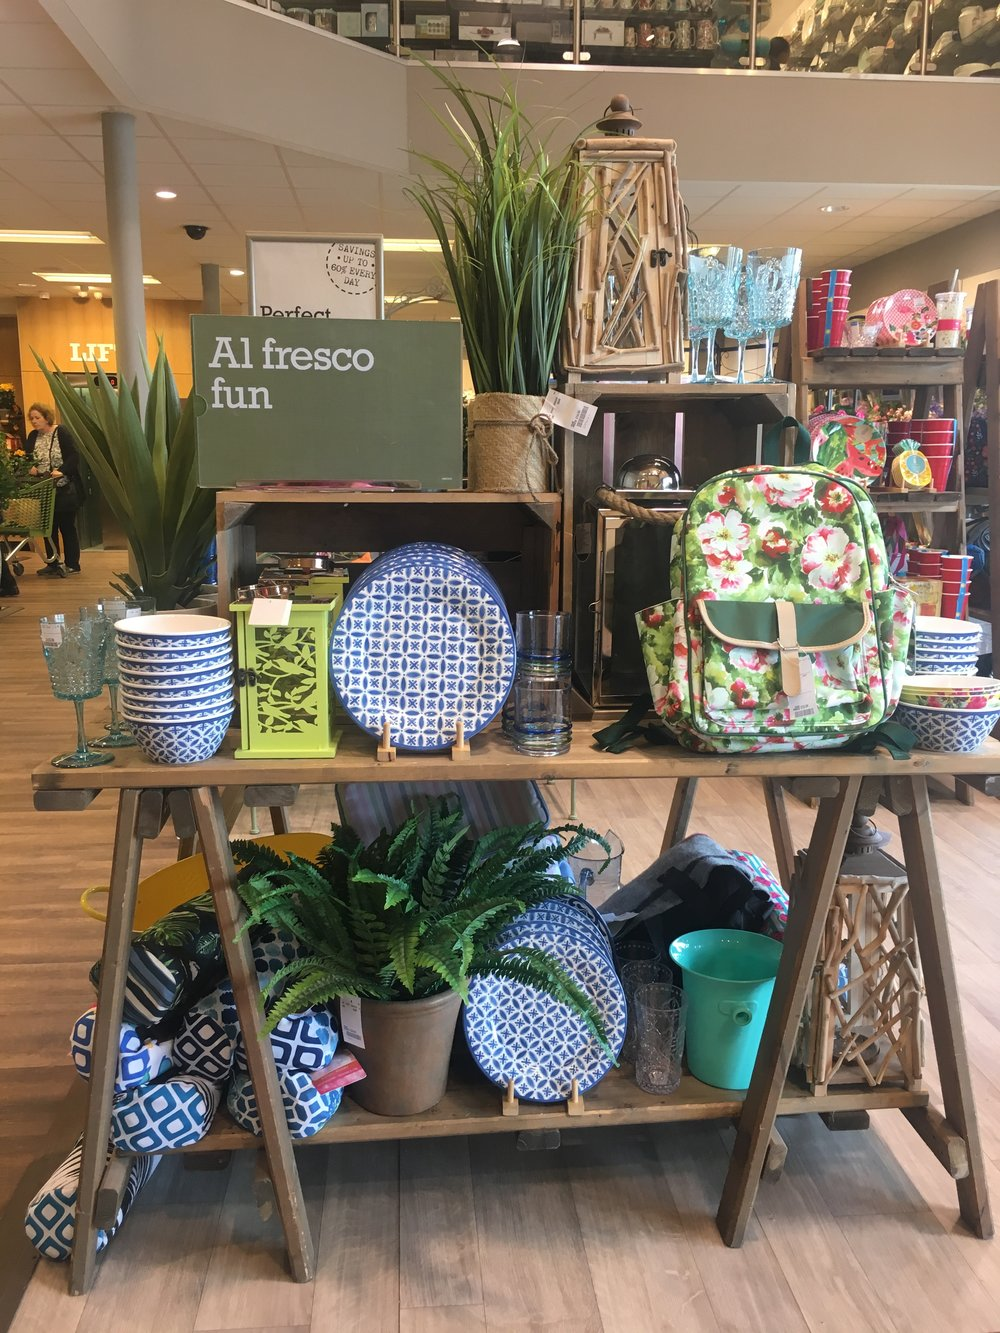 All things green and gardeny at homesense.